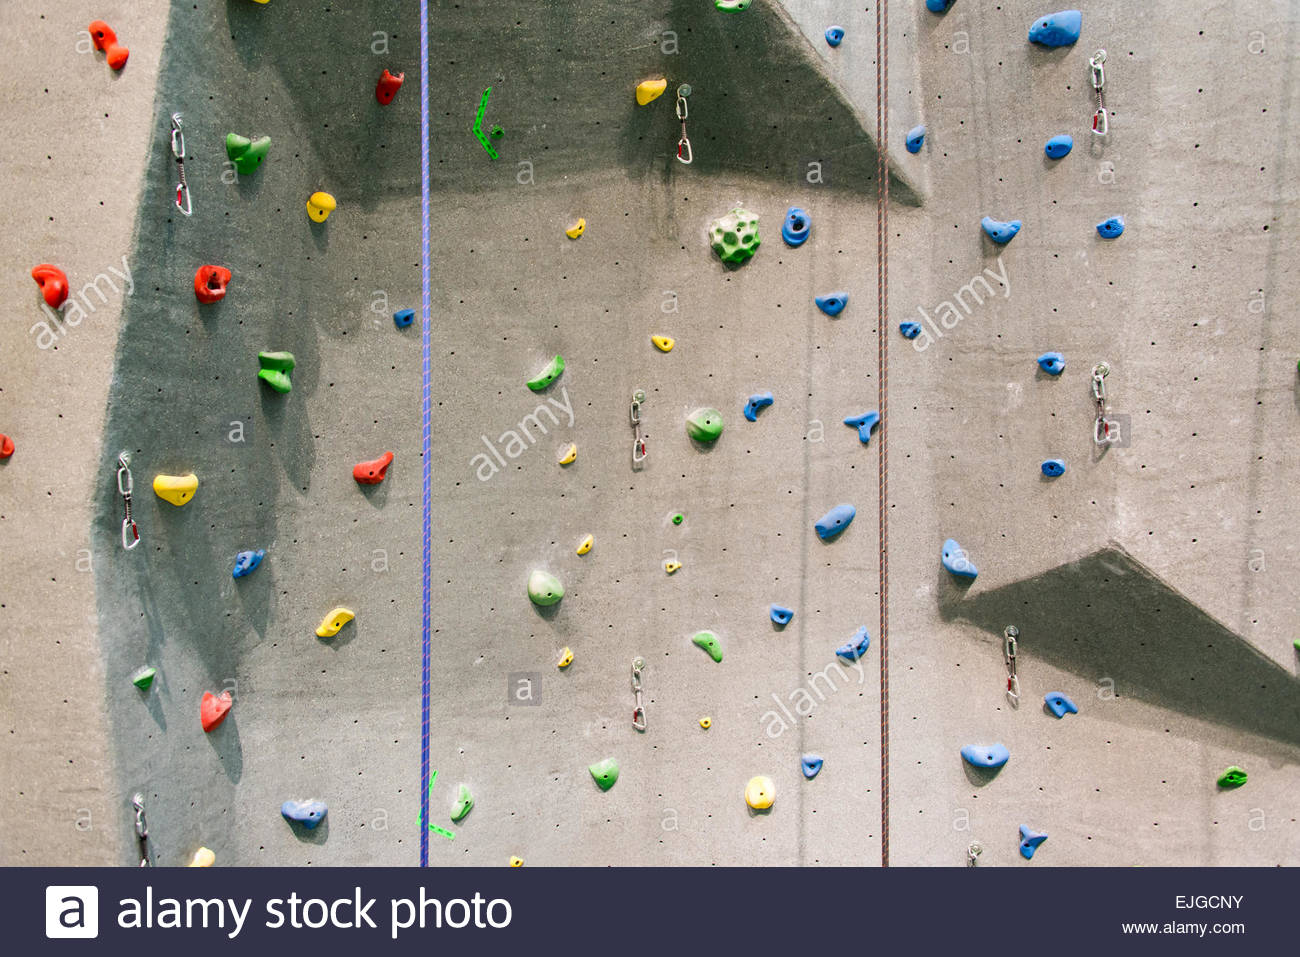 Indoor rock climbing wall in a sport facility where many practice to be fit and in better health - Stock Image